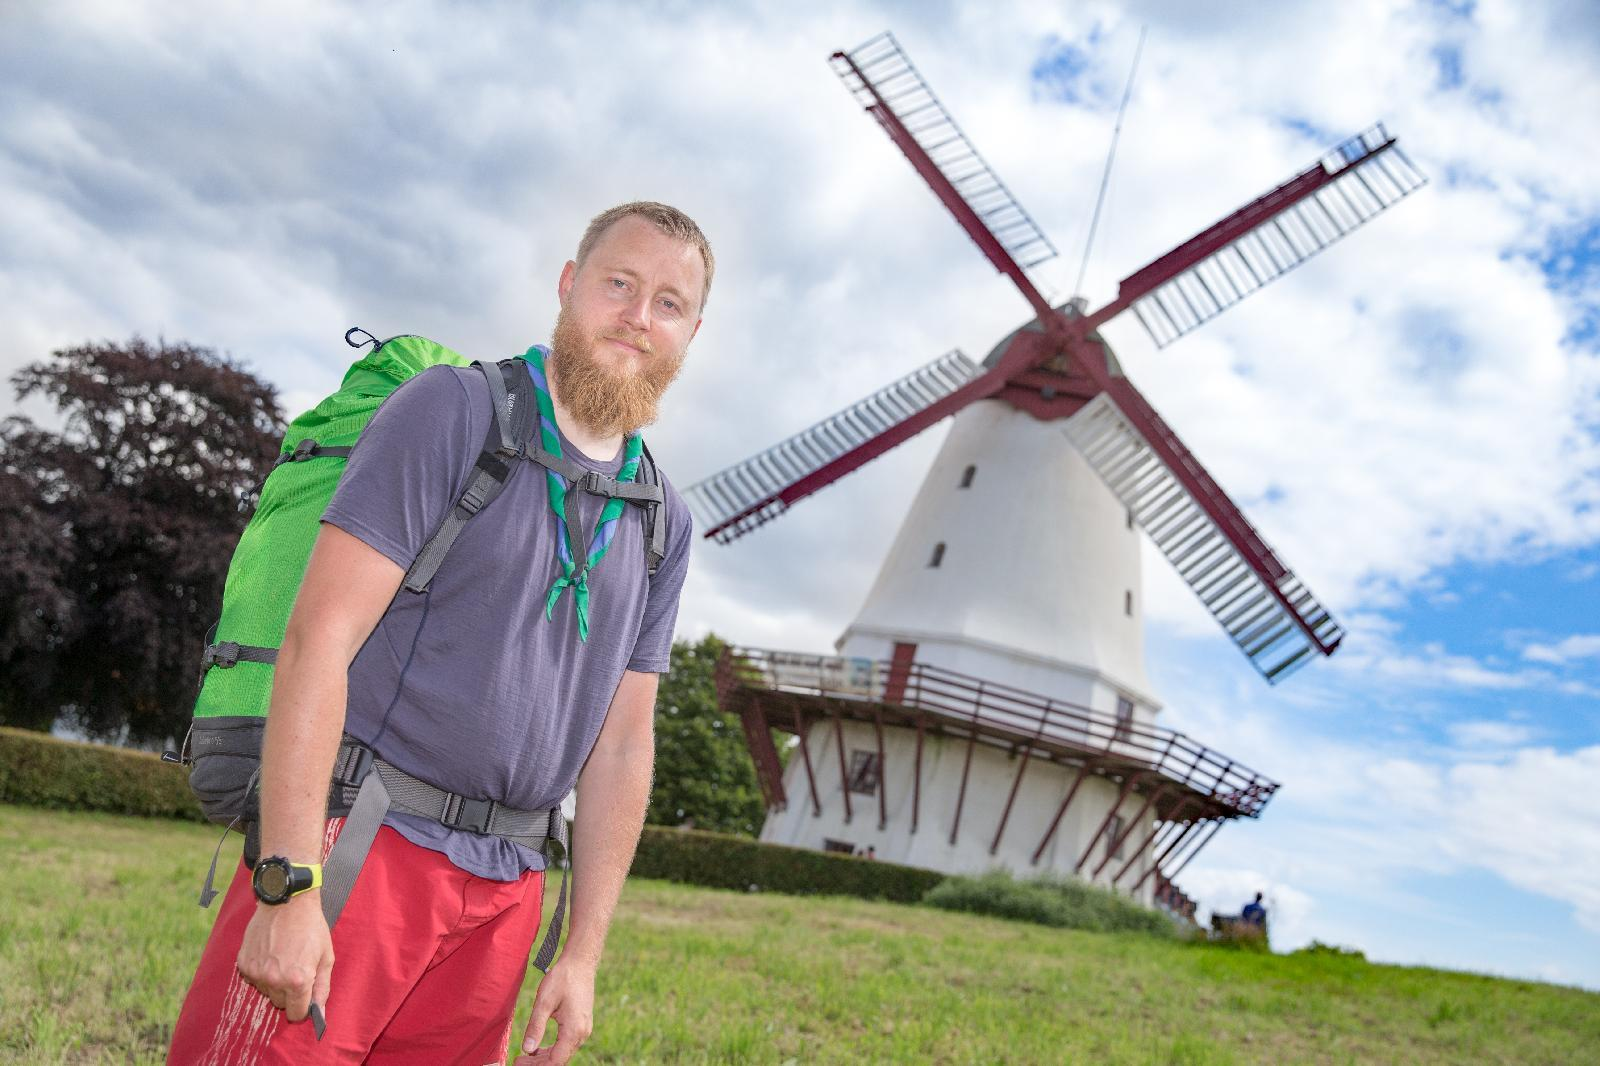 Henrik Hove Hornum has hitchhiked from Hammershøj to Kliplev, and then walked the last 40 km to Jamboree Denmark 2017.